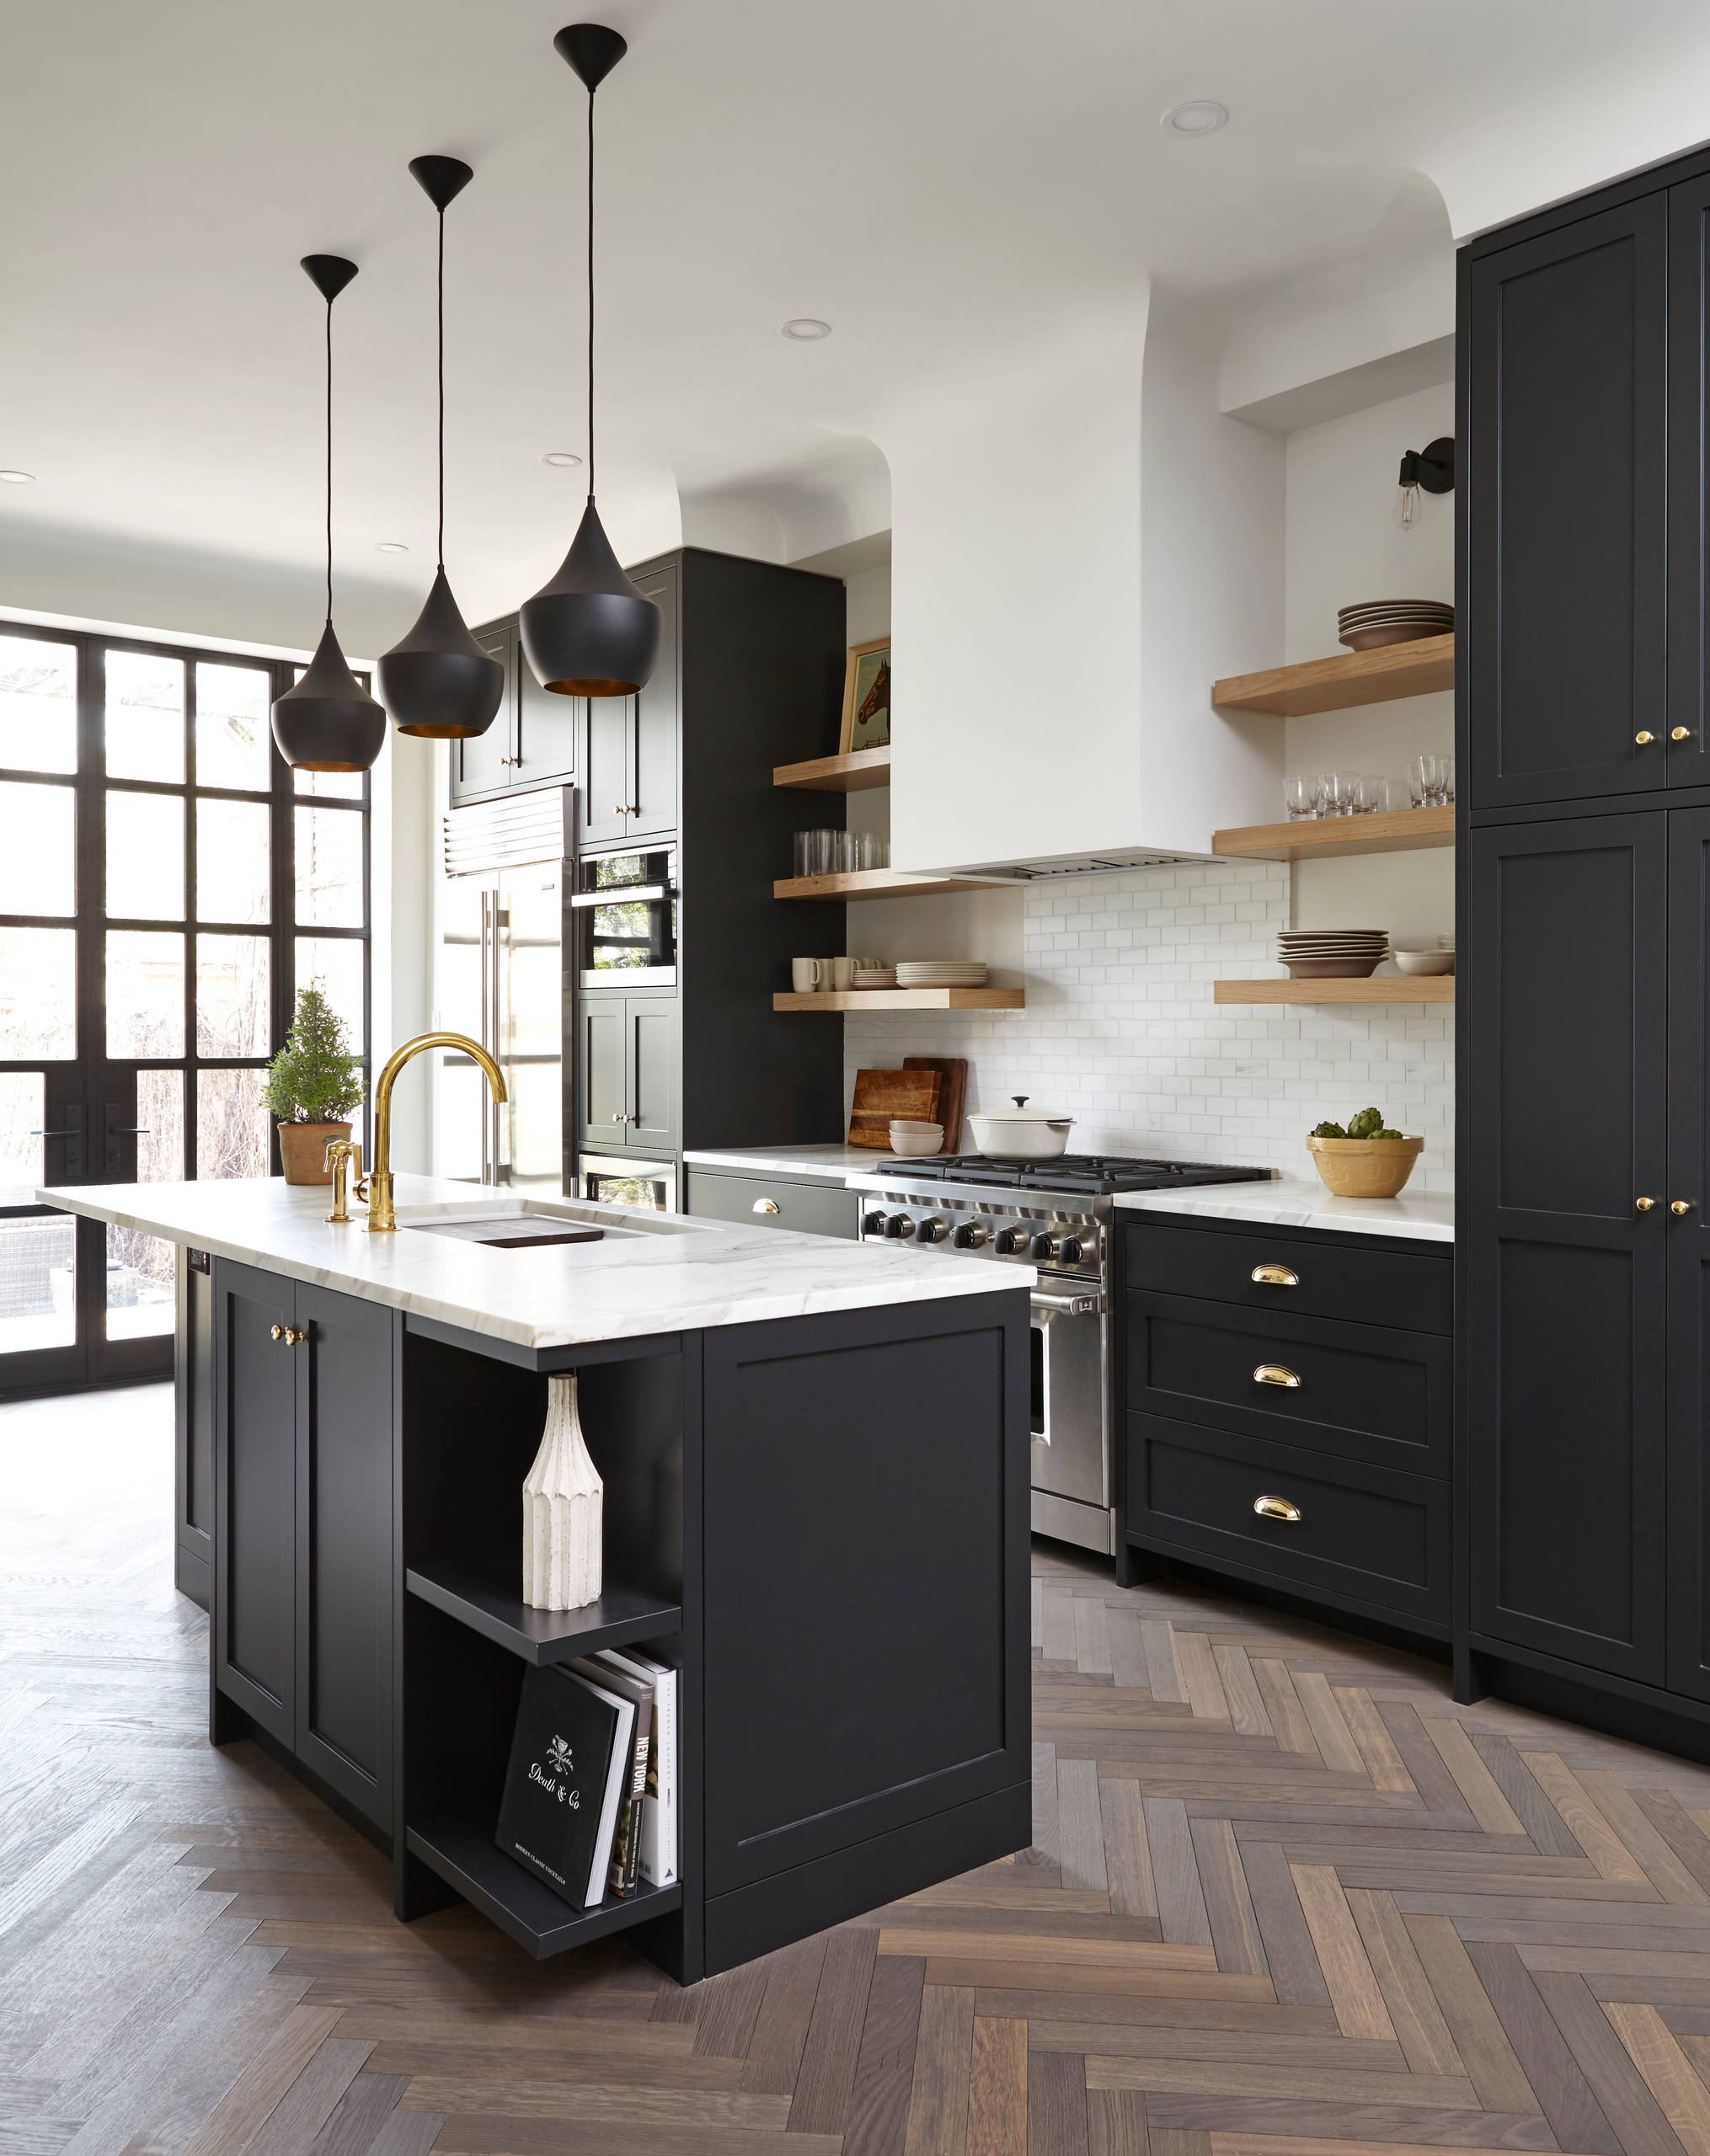 75 Beautiful Transitional Enclosed Kitchen Pictures Ideas April 2021 Houzz